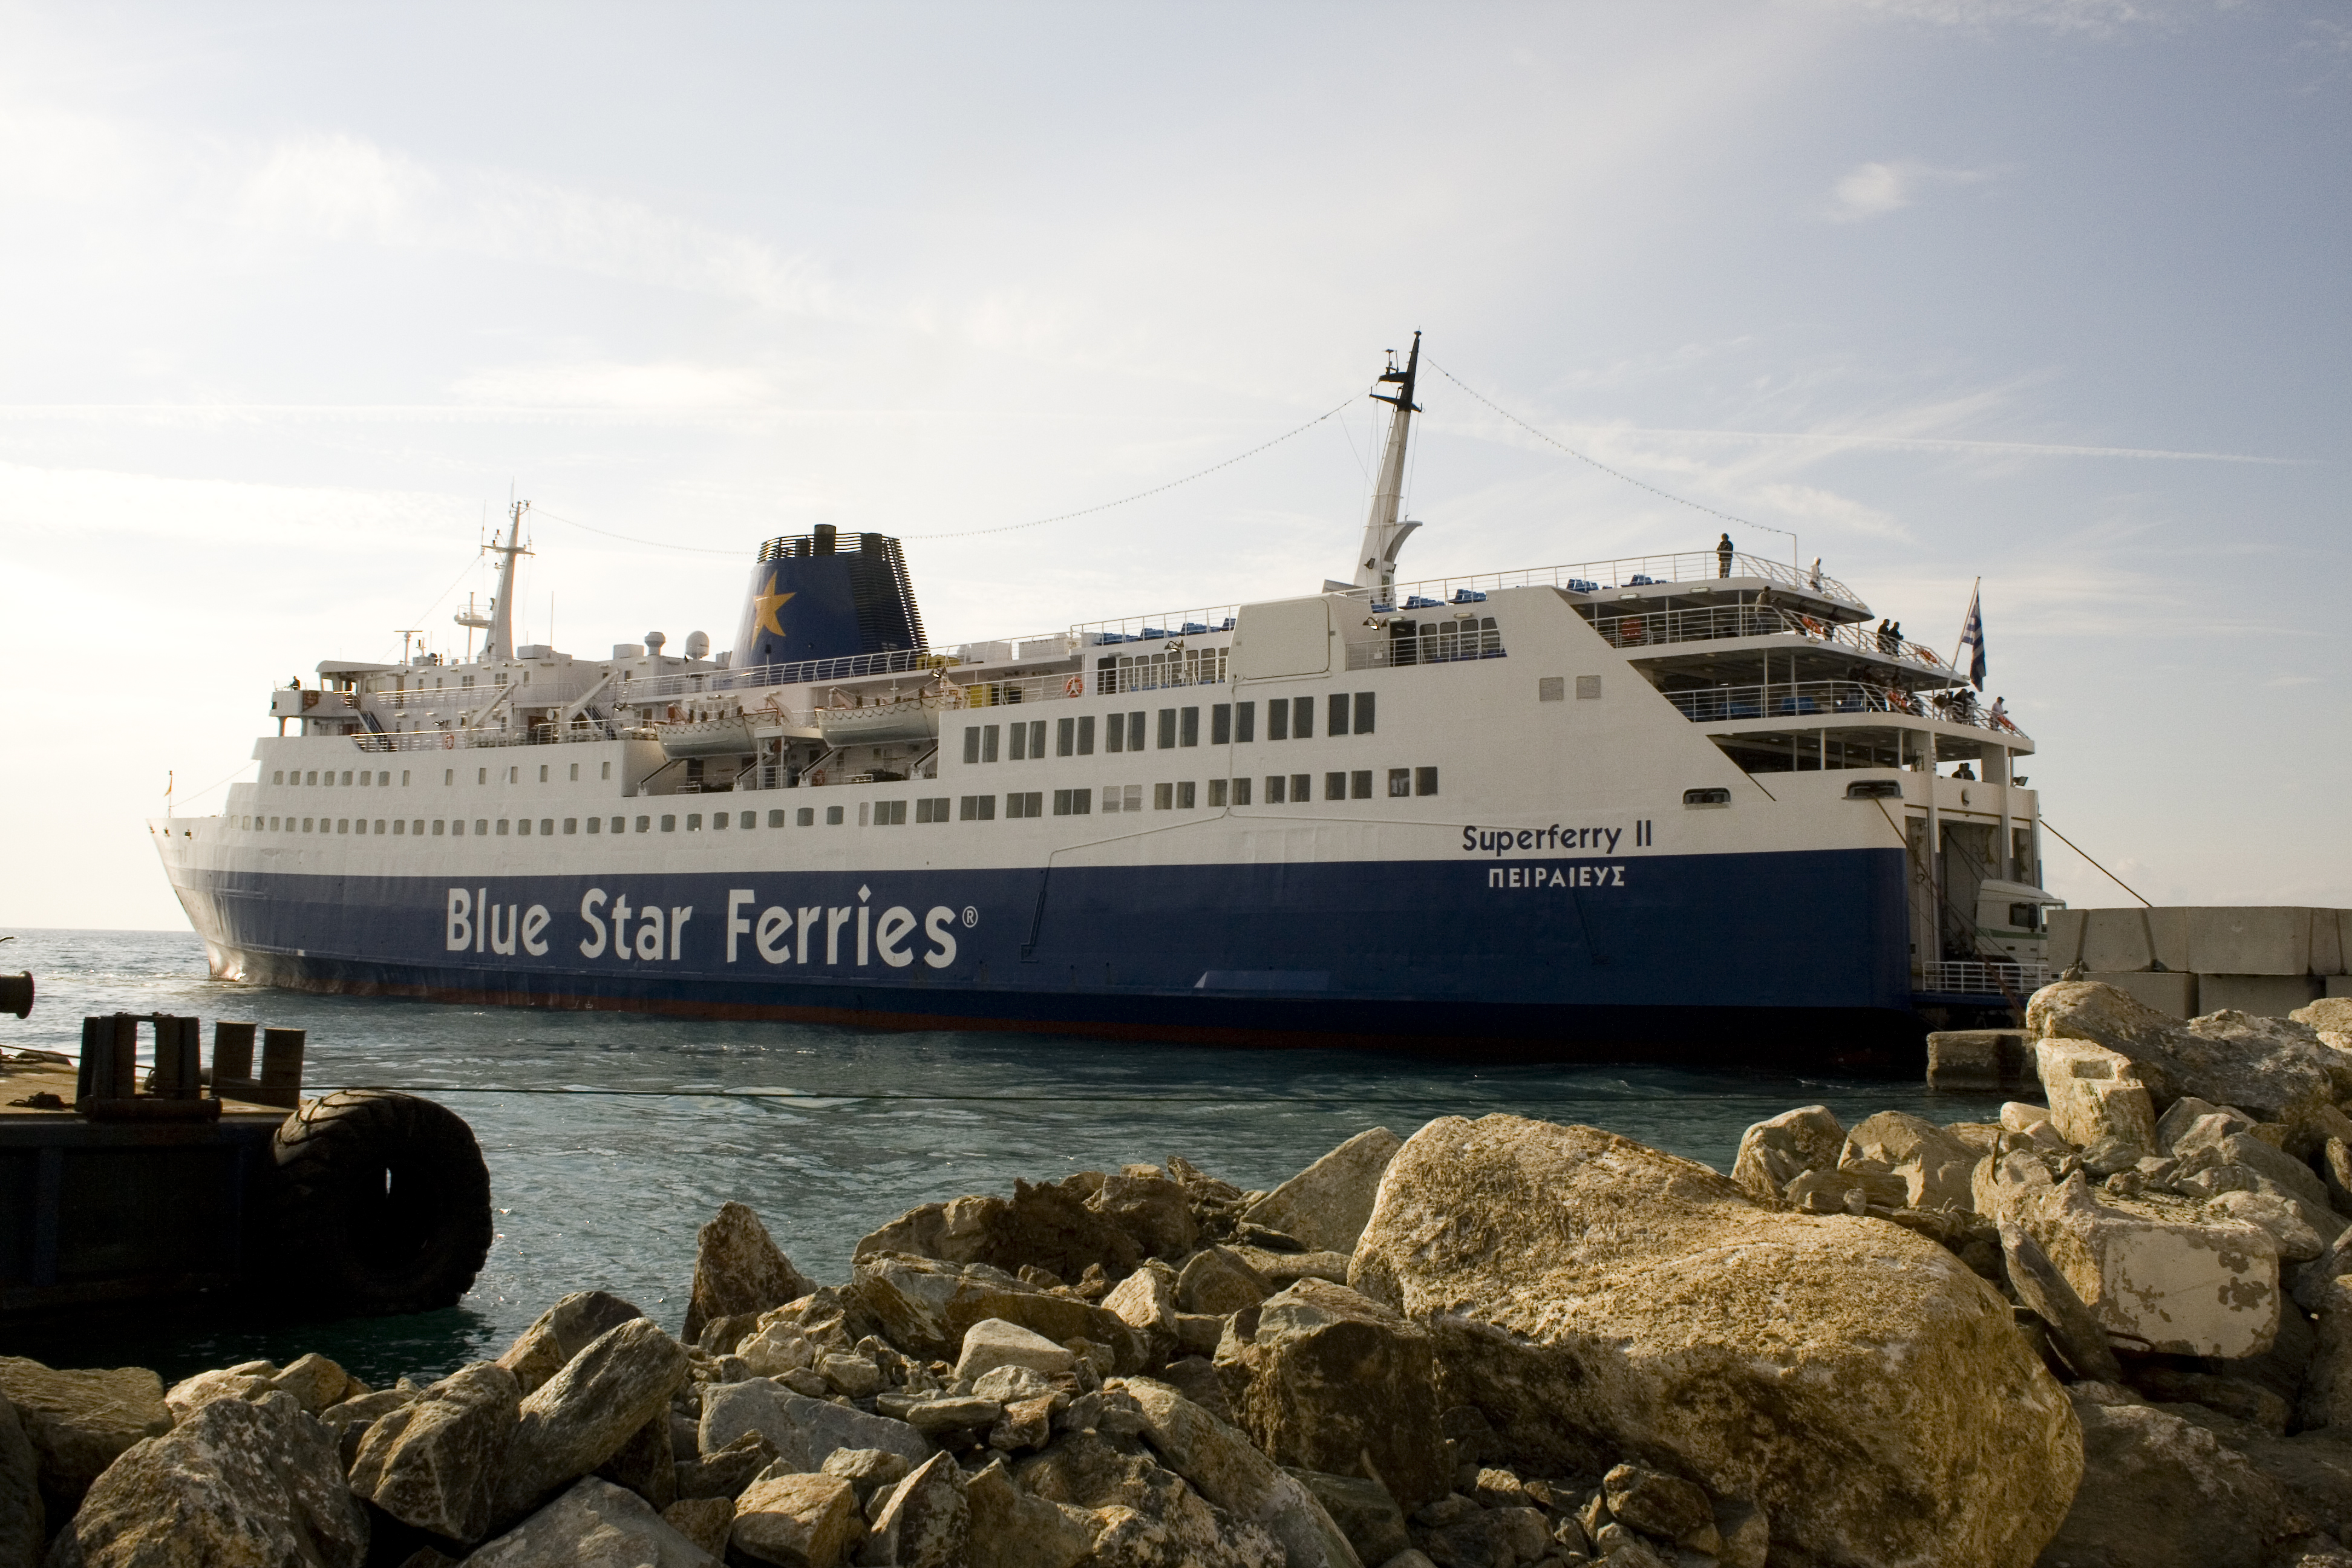 BLUE STAR FERRIES FB Superferry II 13_Personale 09Ge07